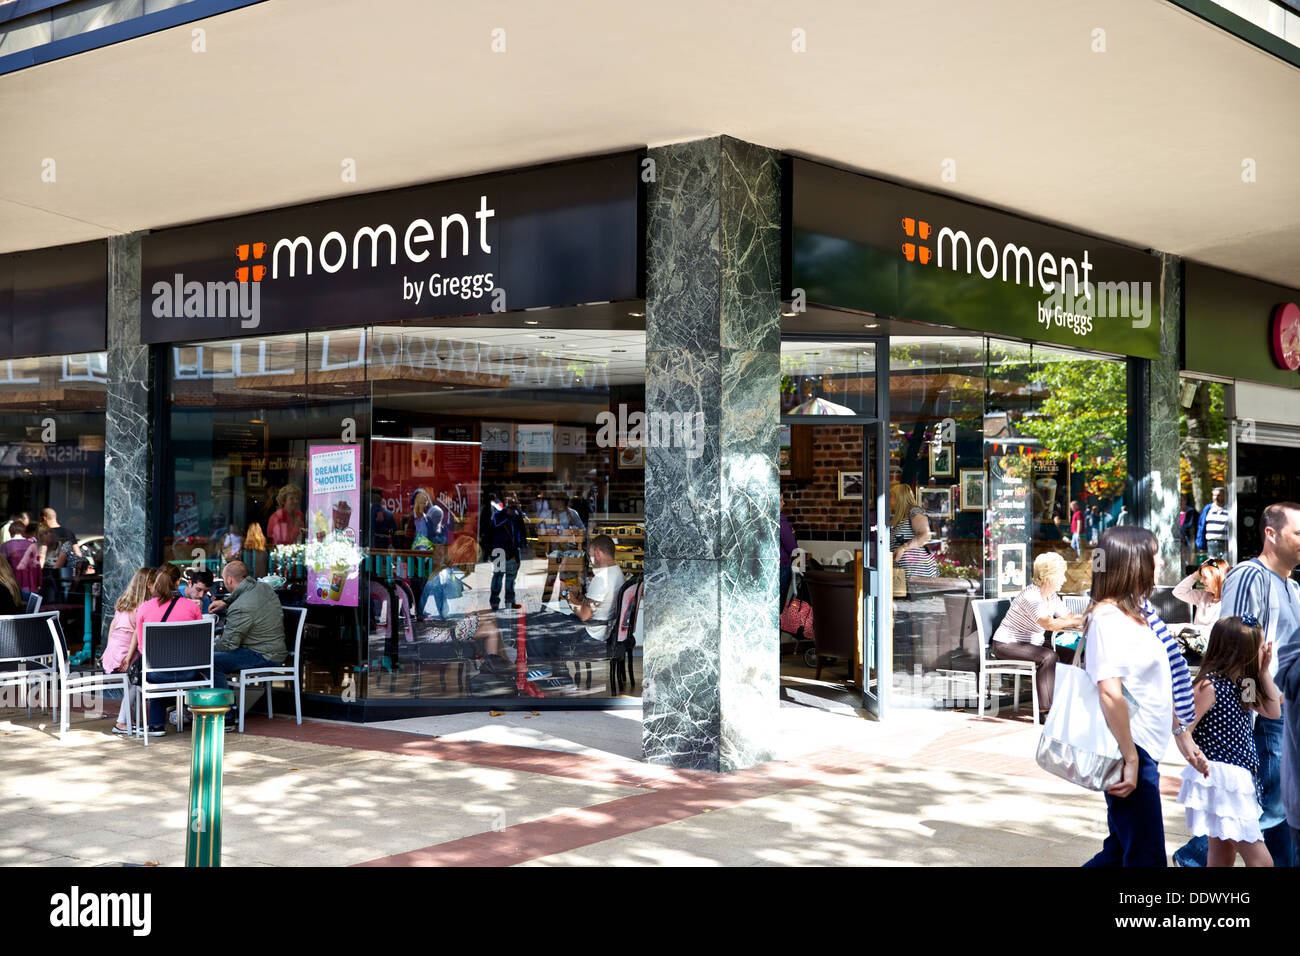 Moment Shop Front By Greggs - Stock Image